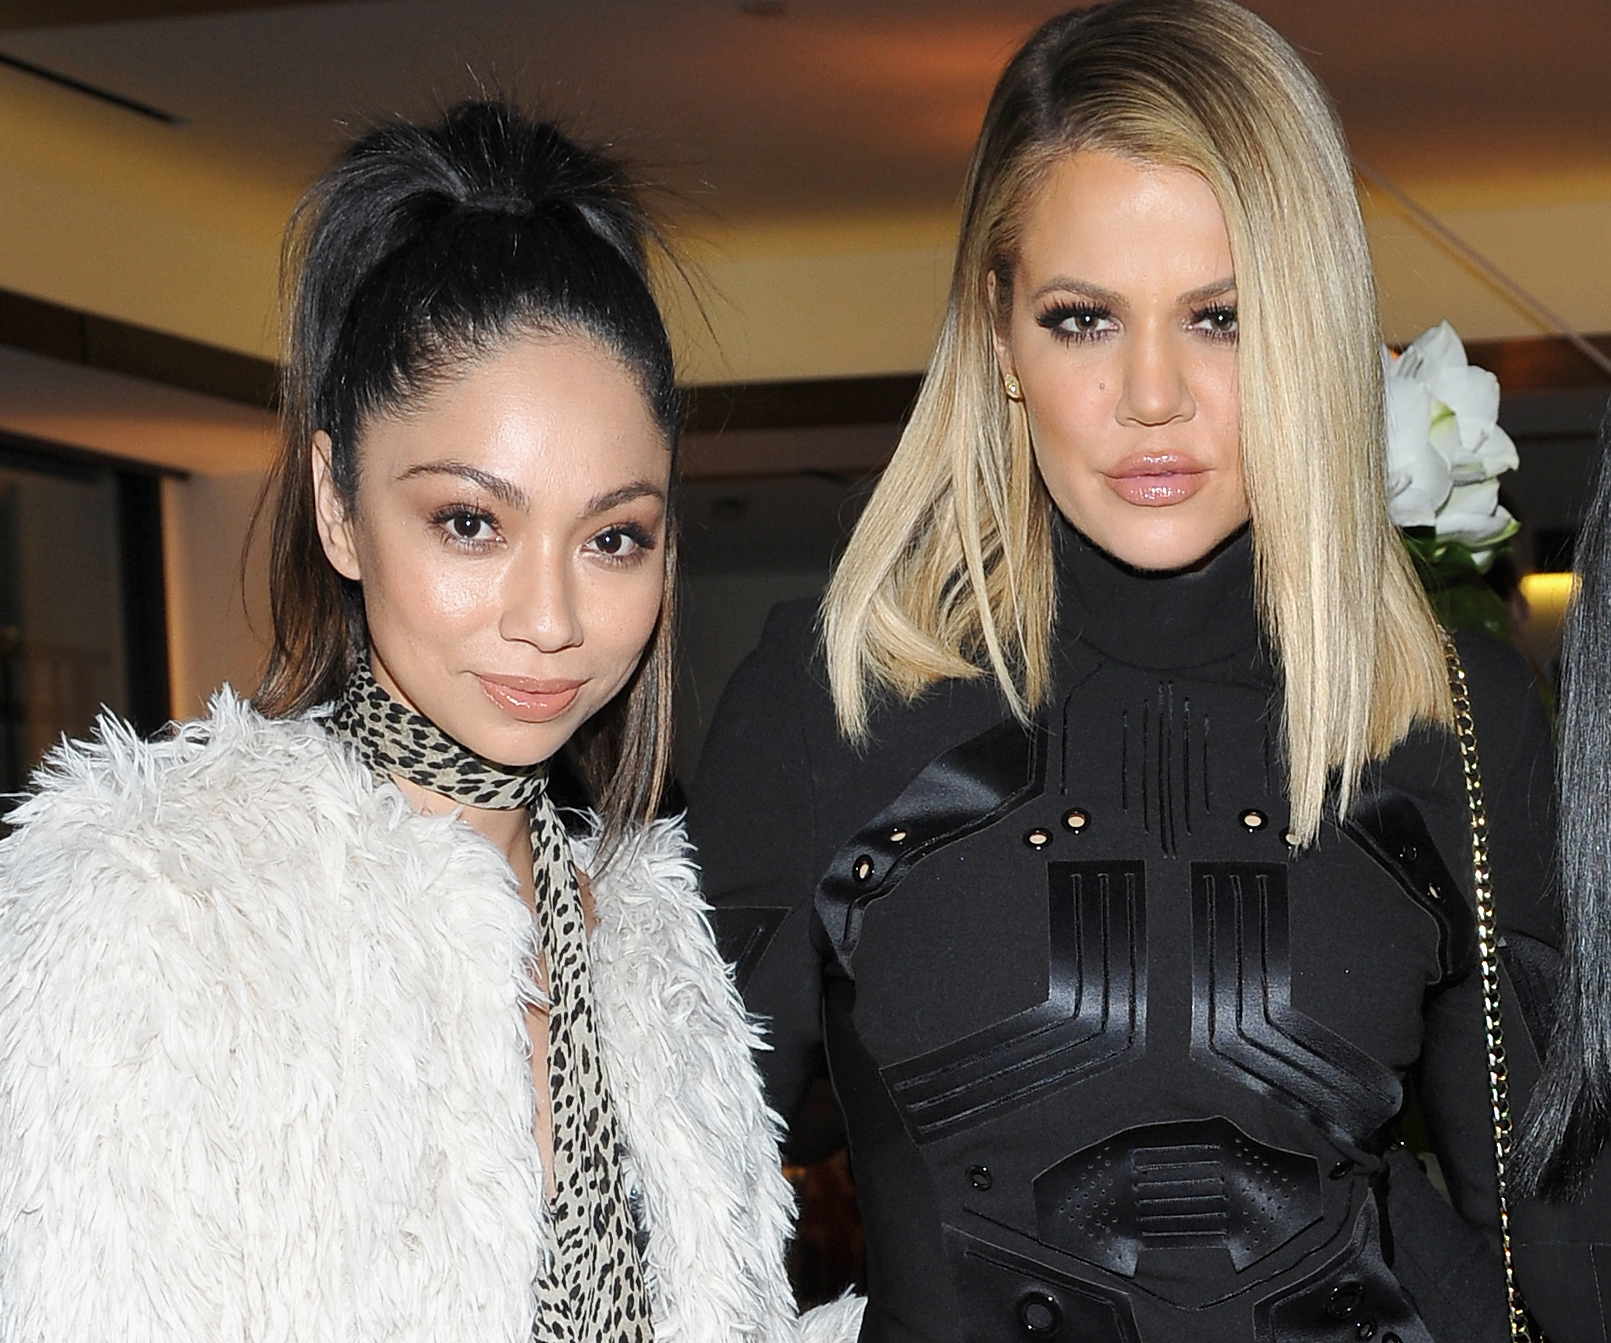 Khloe Kardashian Called Out A Friend On Twitter For Stealing From Her